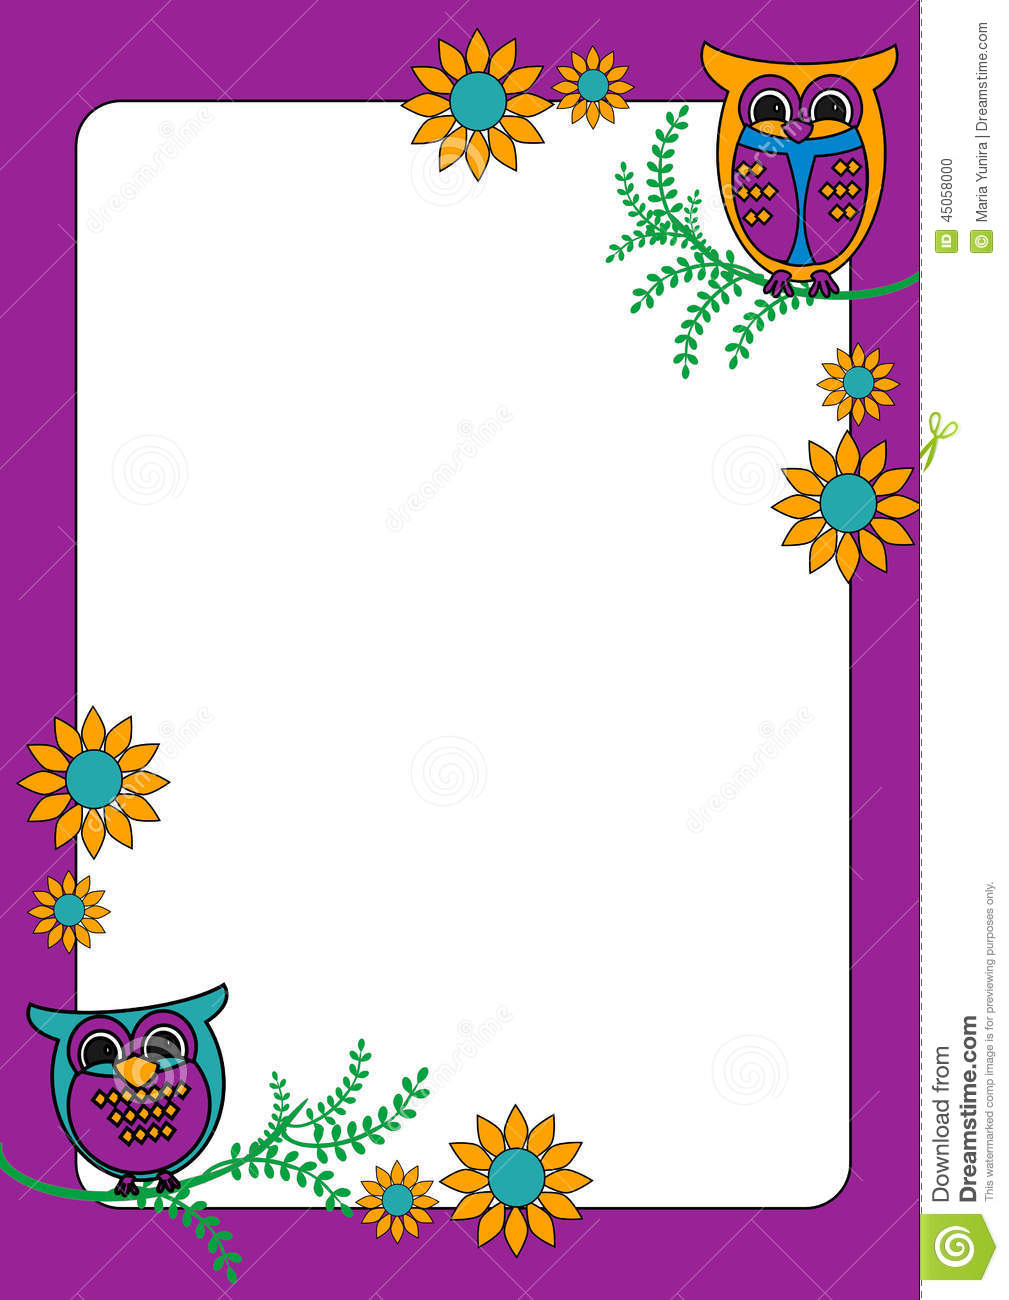 Owl clipart frame Search Google Search frame